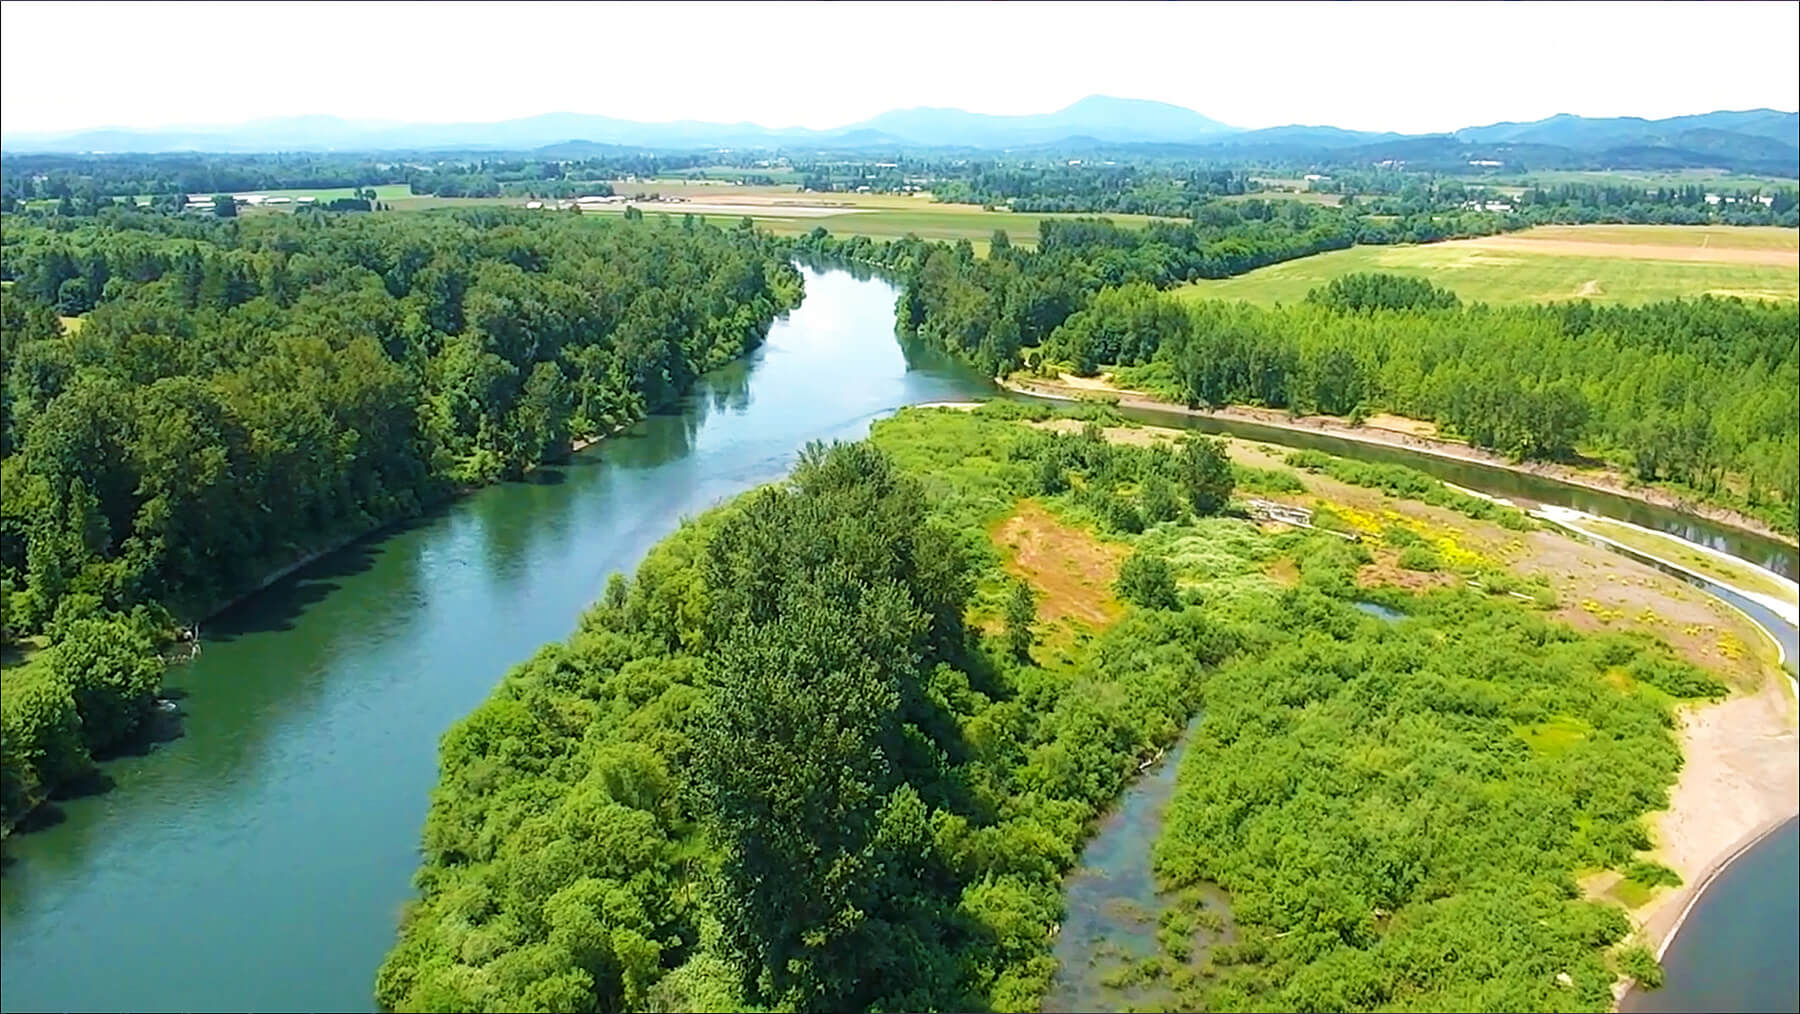 GLT_Photo 2_Willamette River Drone of Horseshoe Lake by Intel Corporation